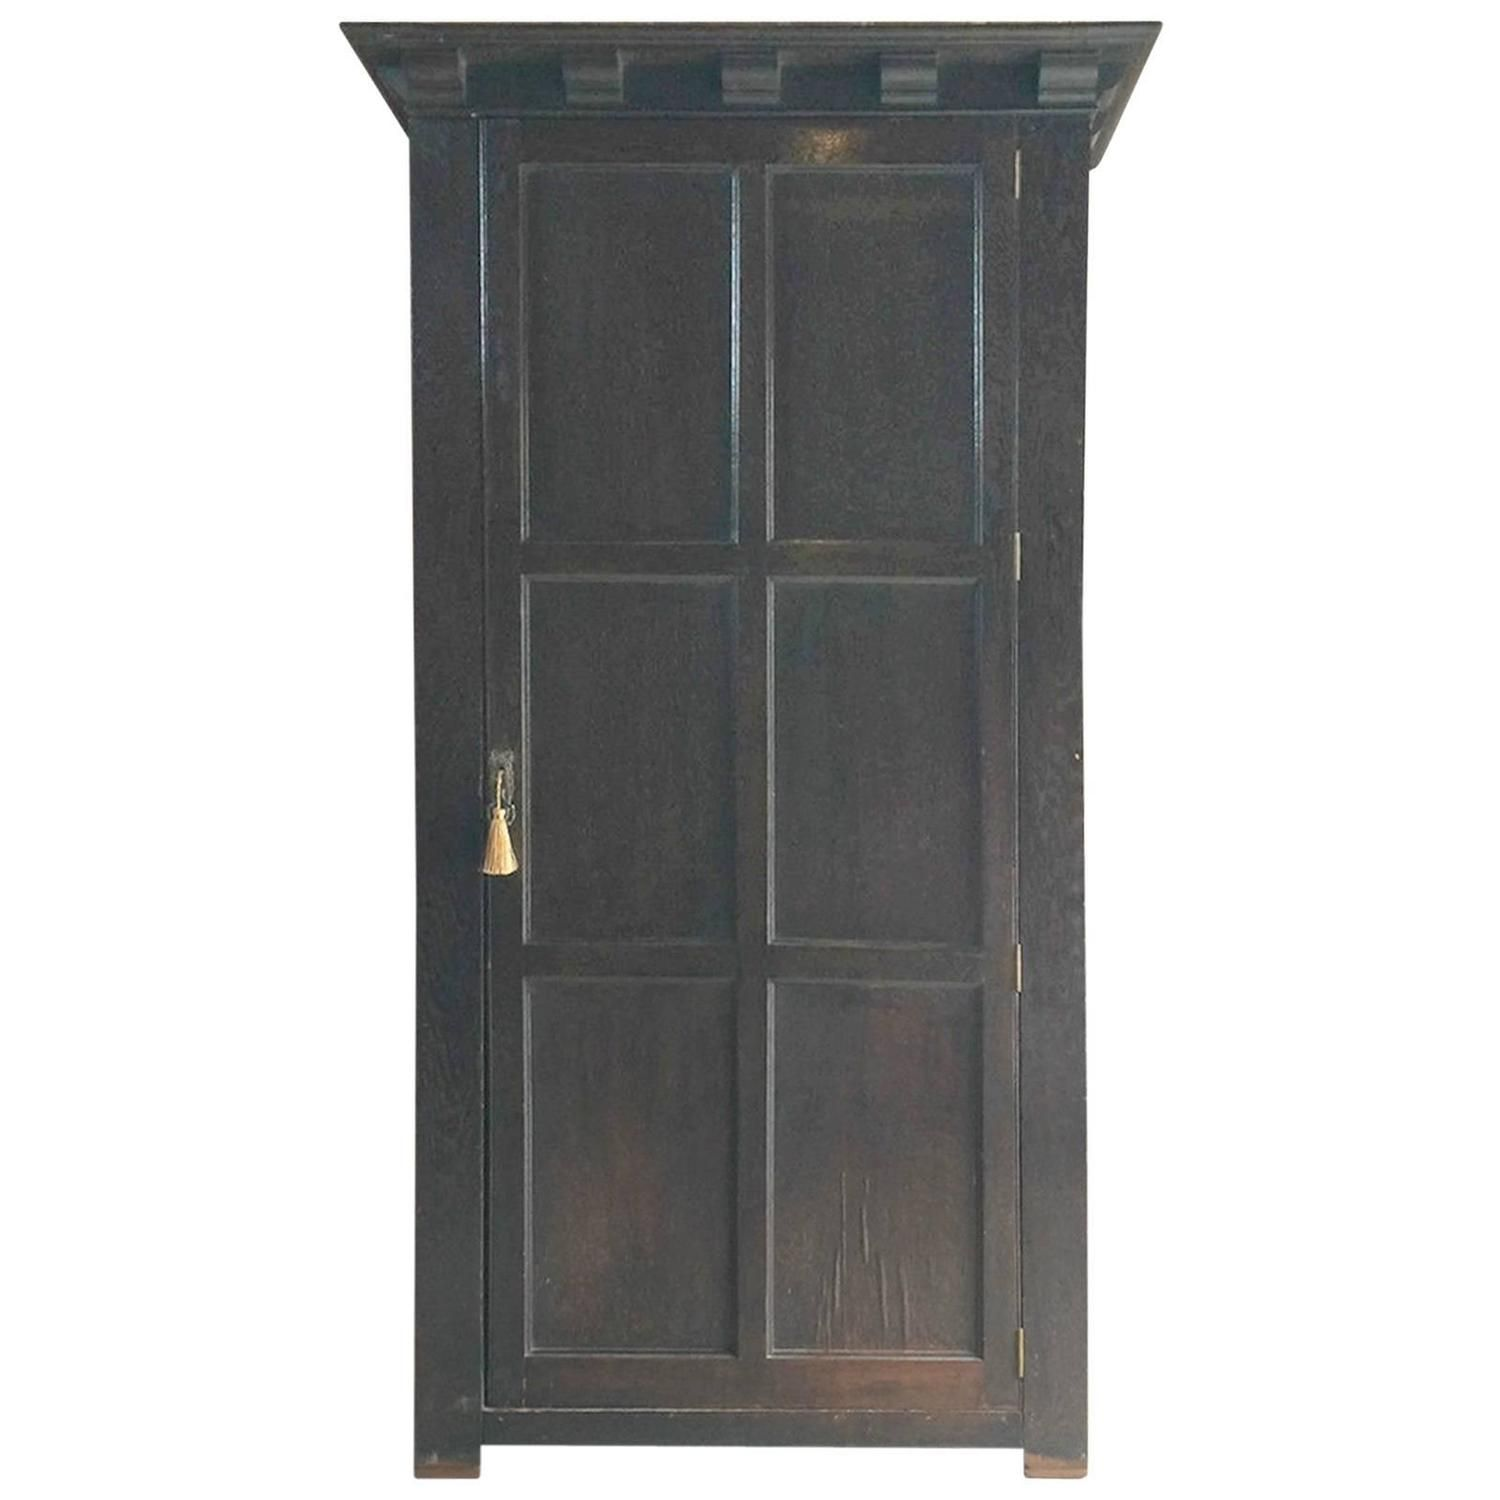 495 Antique Single Wardrobe Armoire One